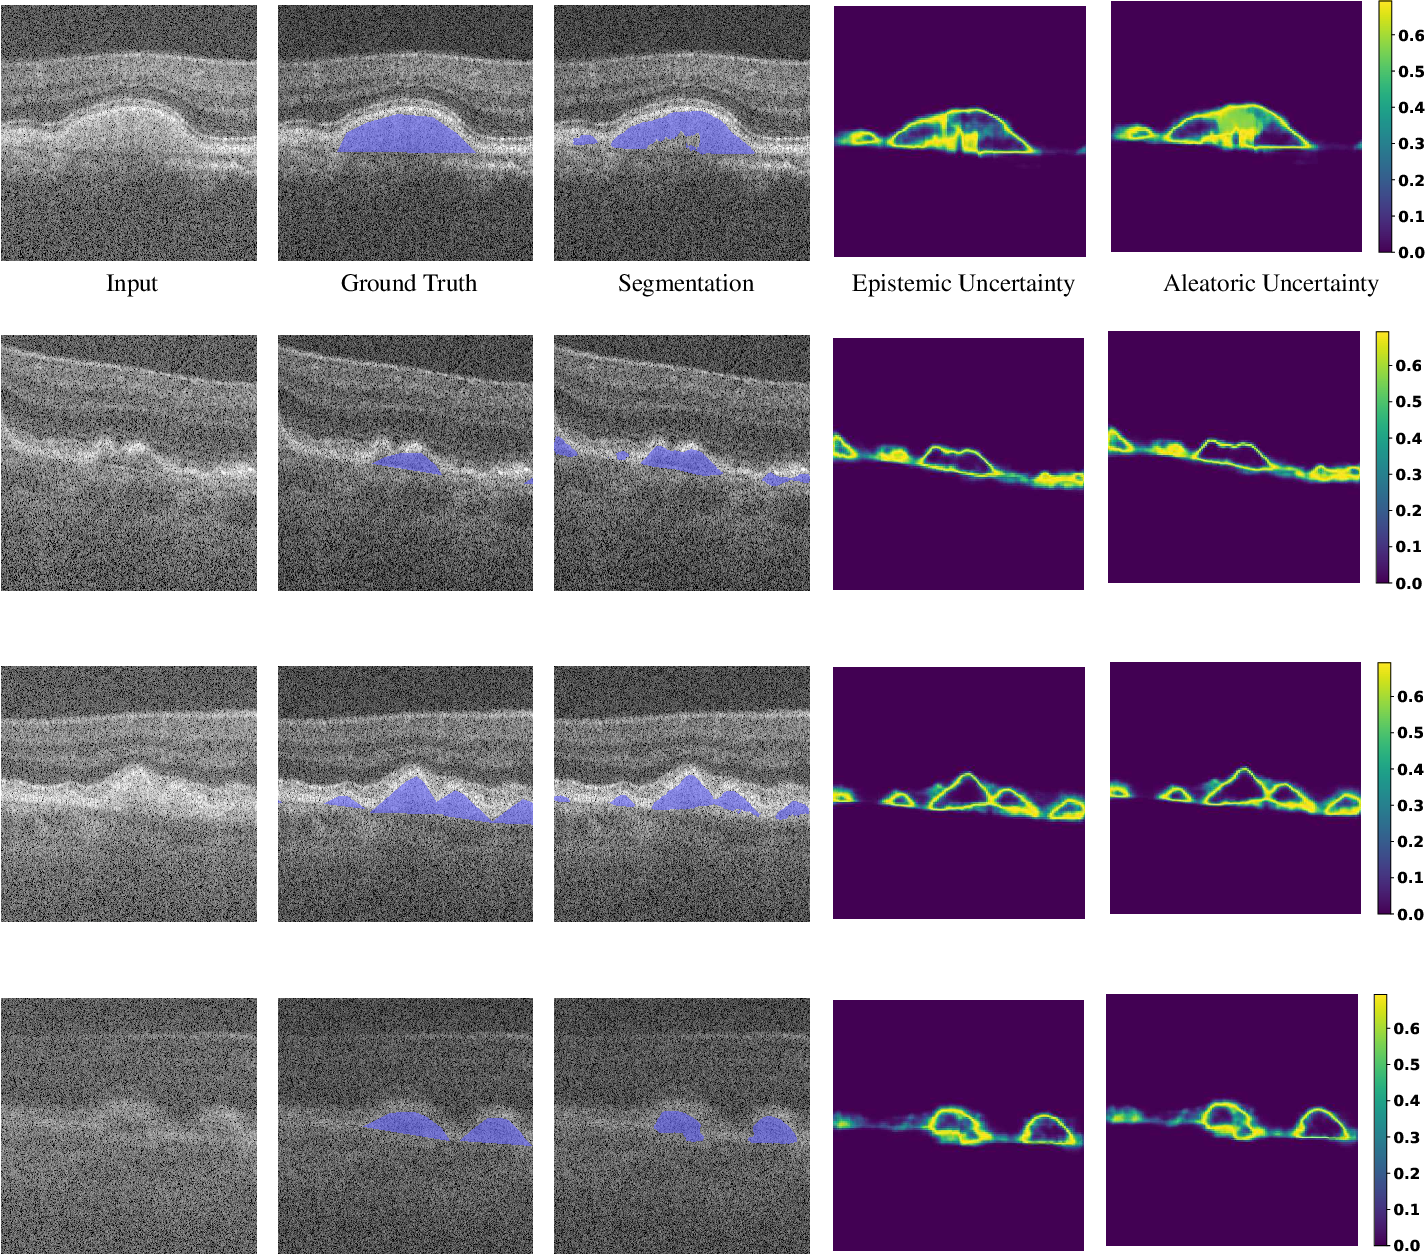 Figure 2 for Analyzing Epistemic and Aleatoric Uncertainty for Drusen Segmentation in Optical Coherence Tomography Images